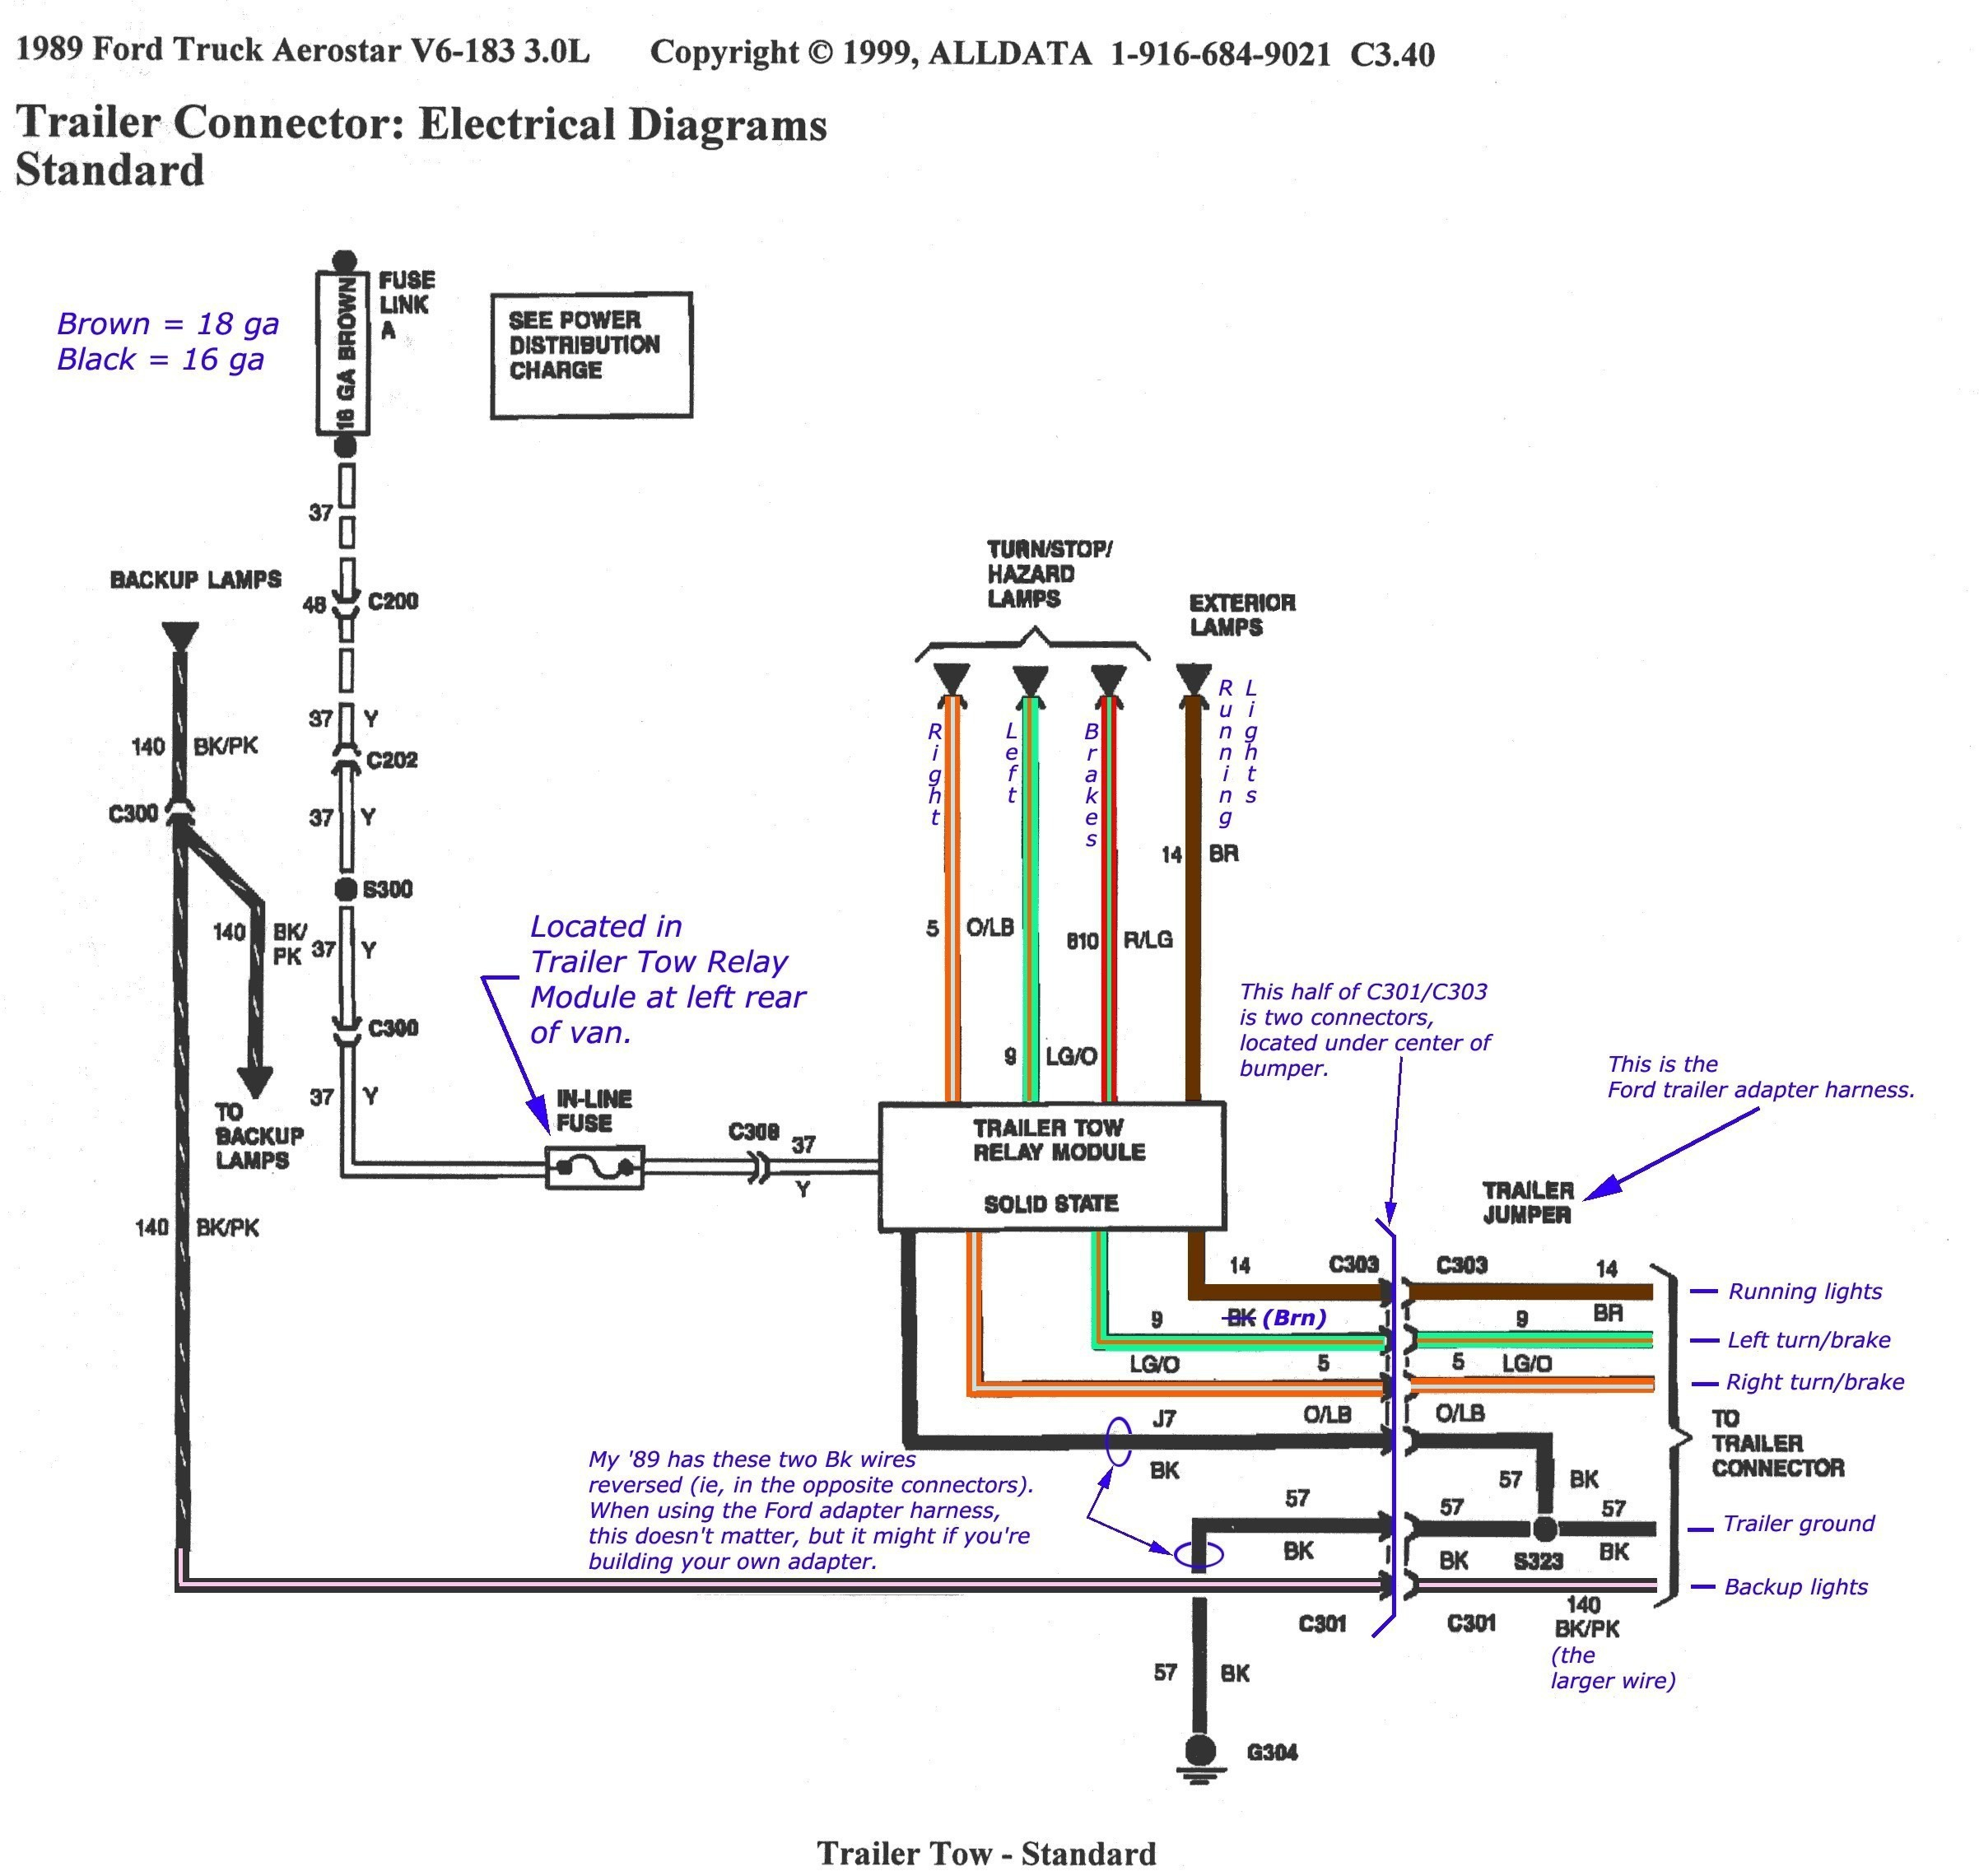 roadmaster wiring diode diagram Download-2005 f250 tow kit wiring scheme wire center u2022 rh wiremopsa co Roadmaster Universal Wiring Kit Roadmaster Universal Wiring Kit 10-e